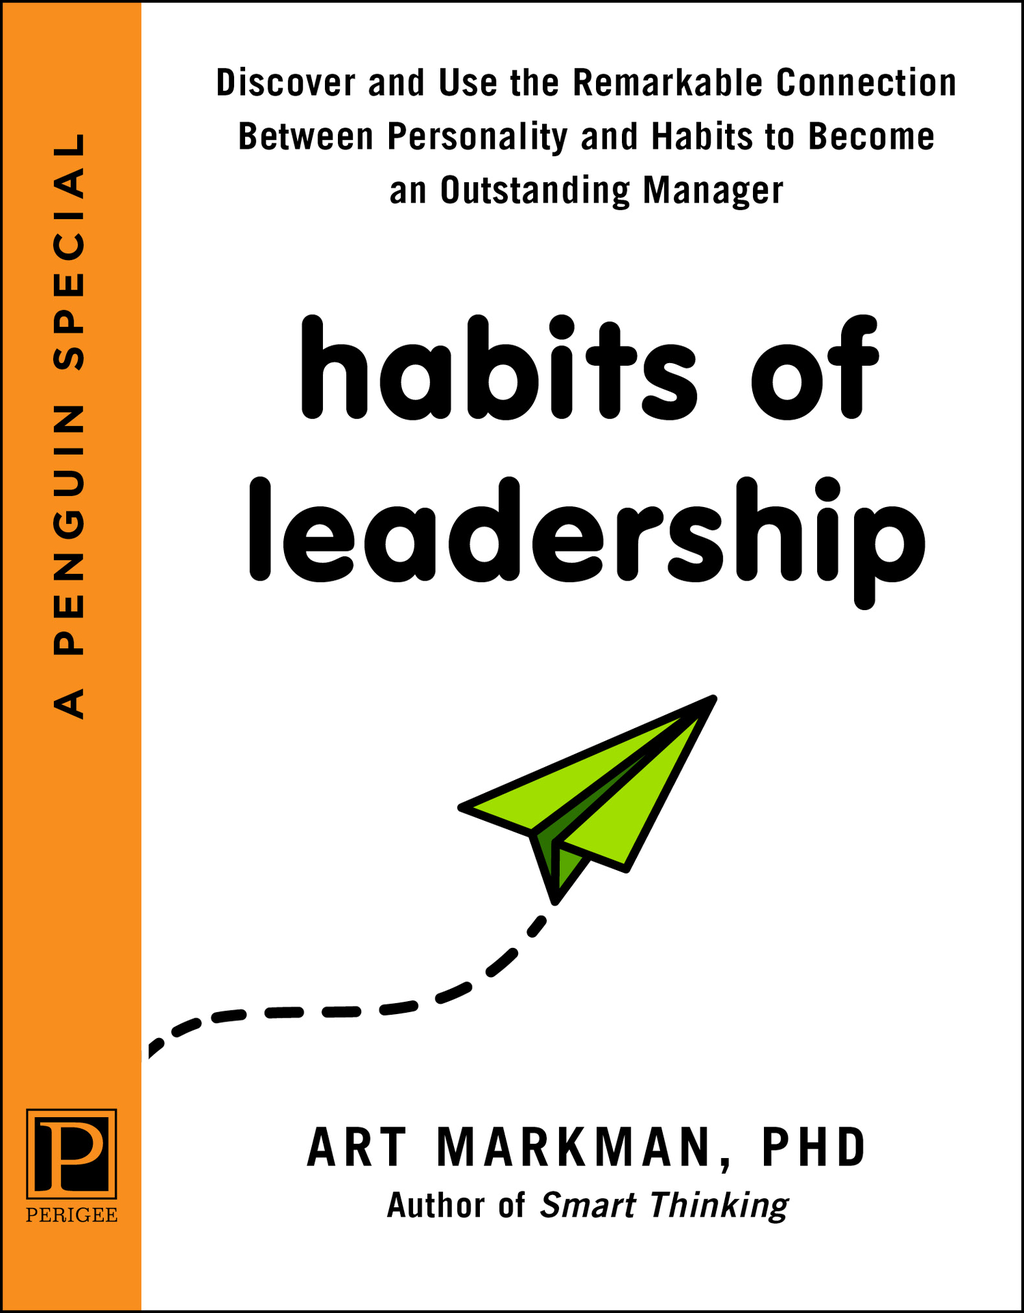 Habits of Leadership By: Art Markman, PhD